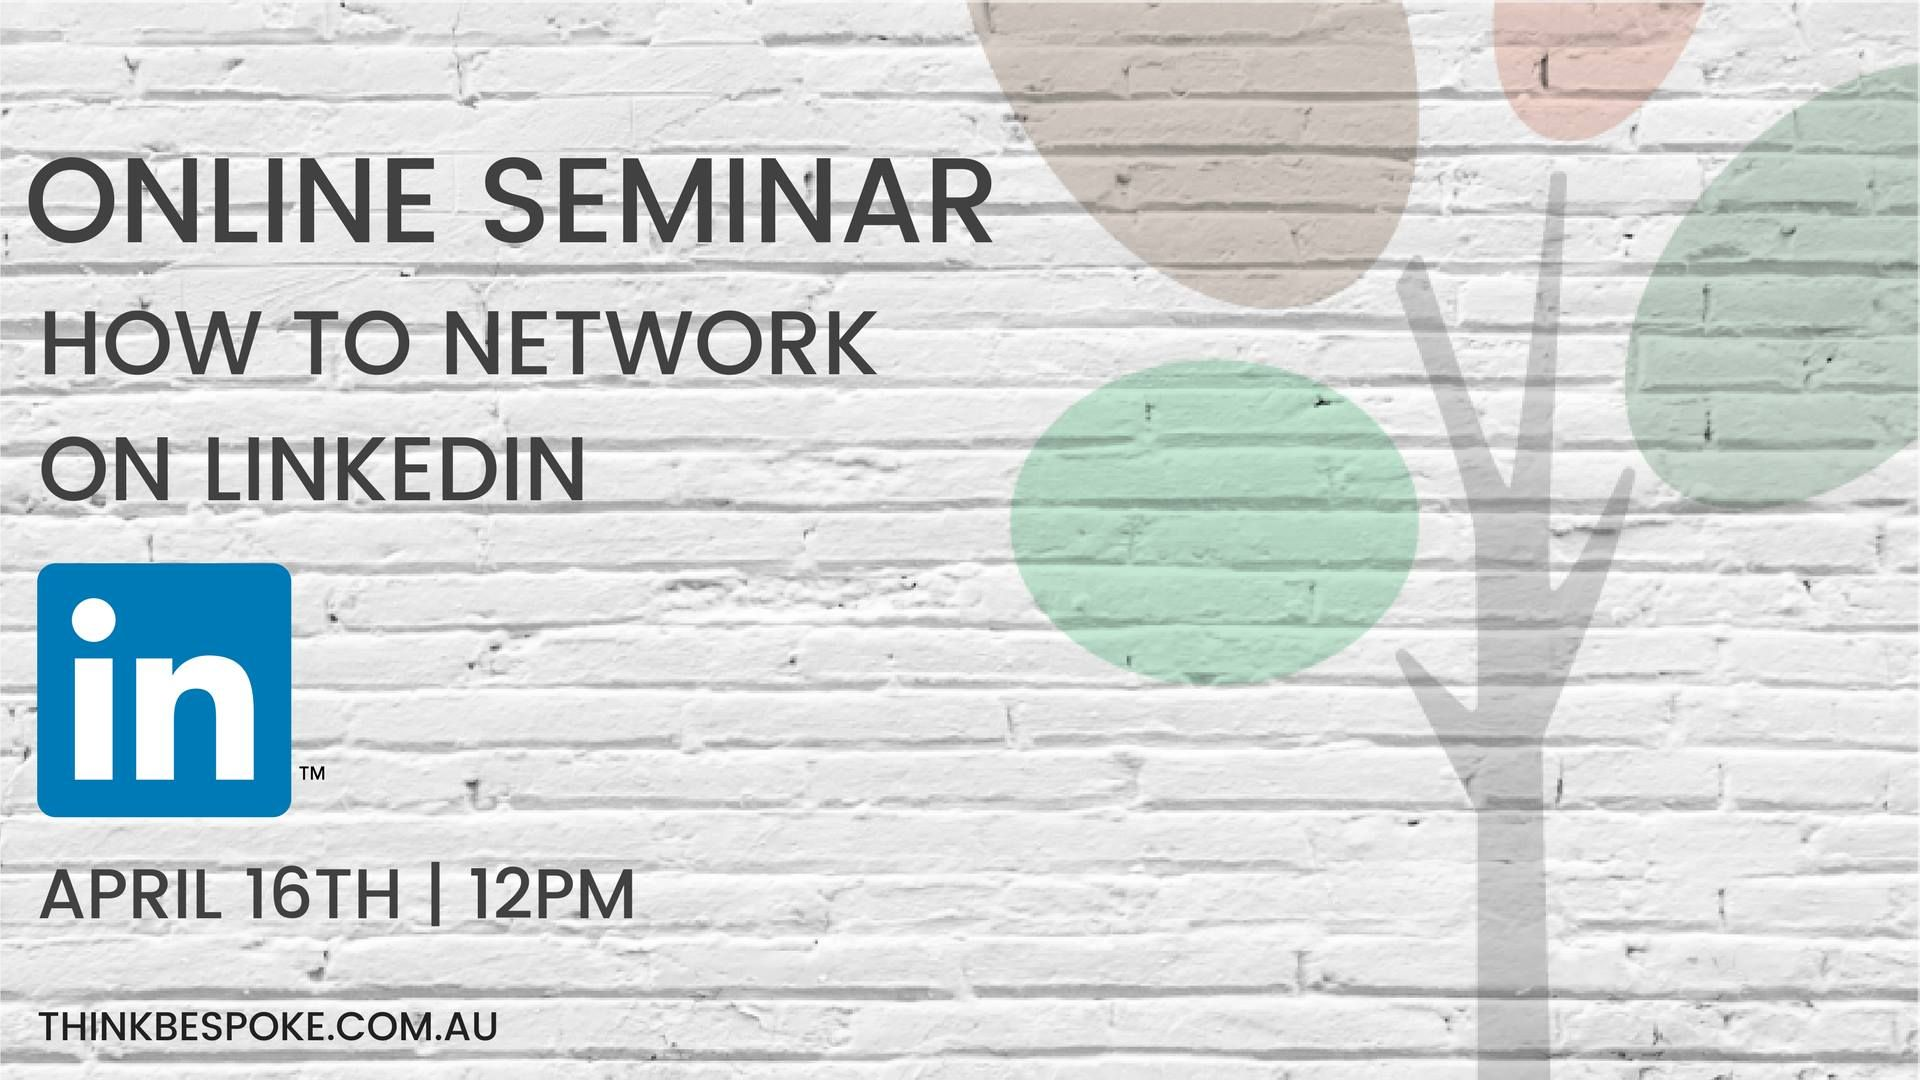 How to Network on LinkedIn FB event banner